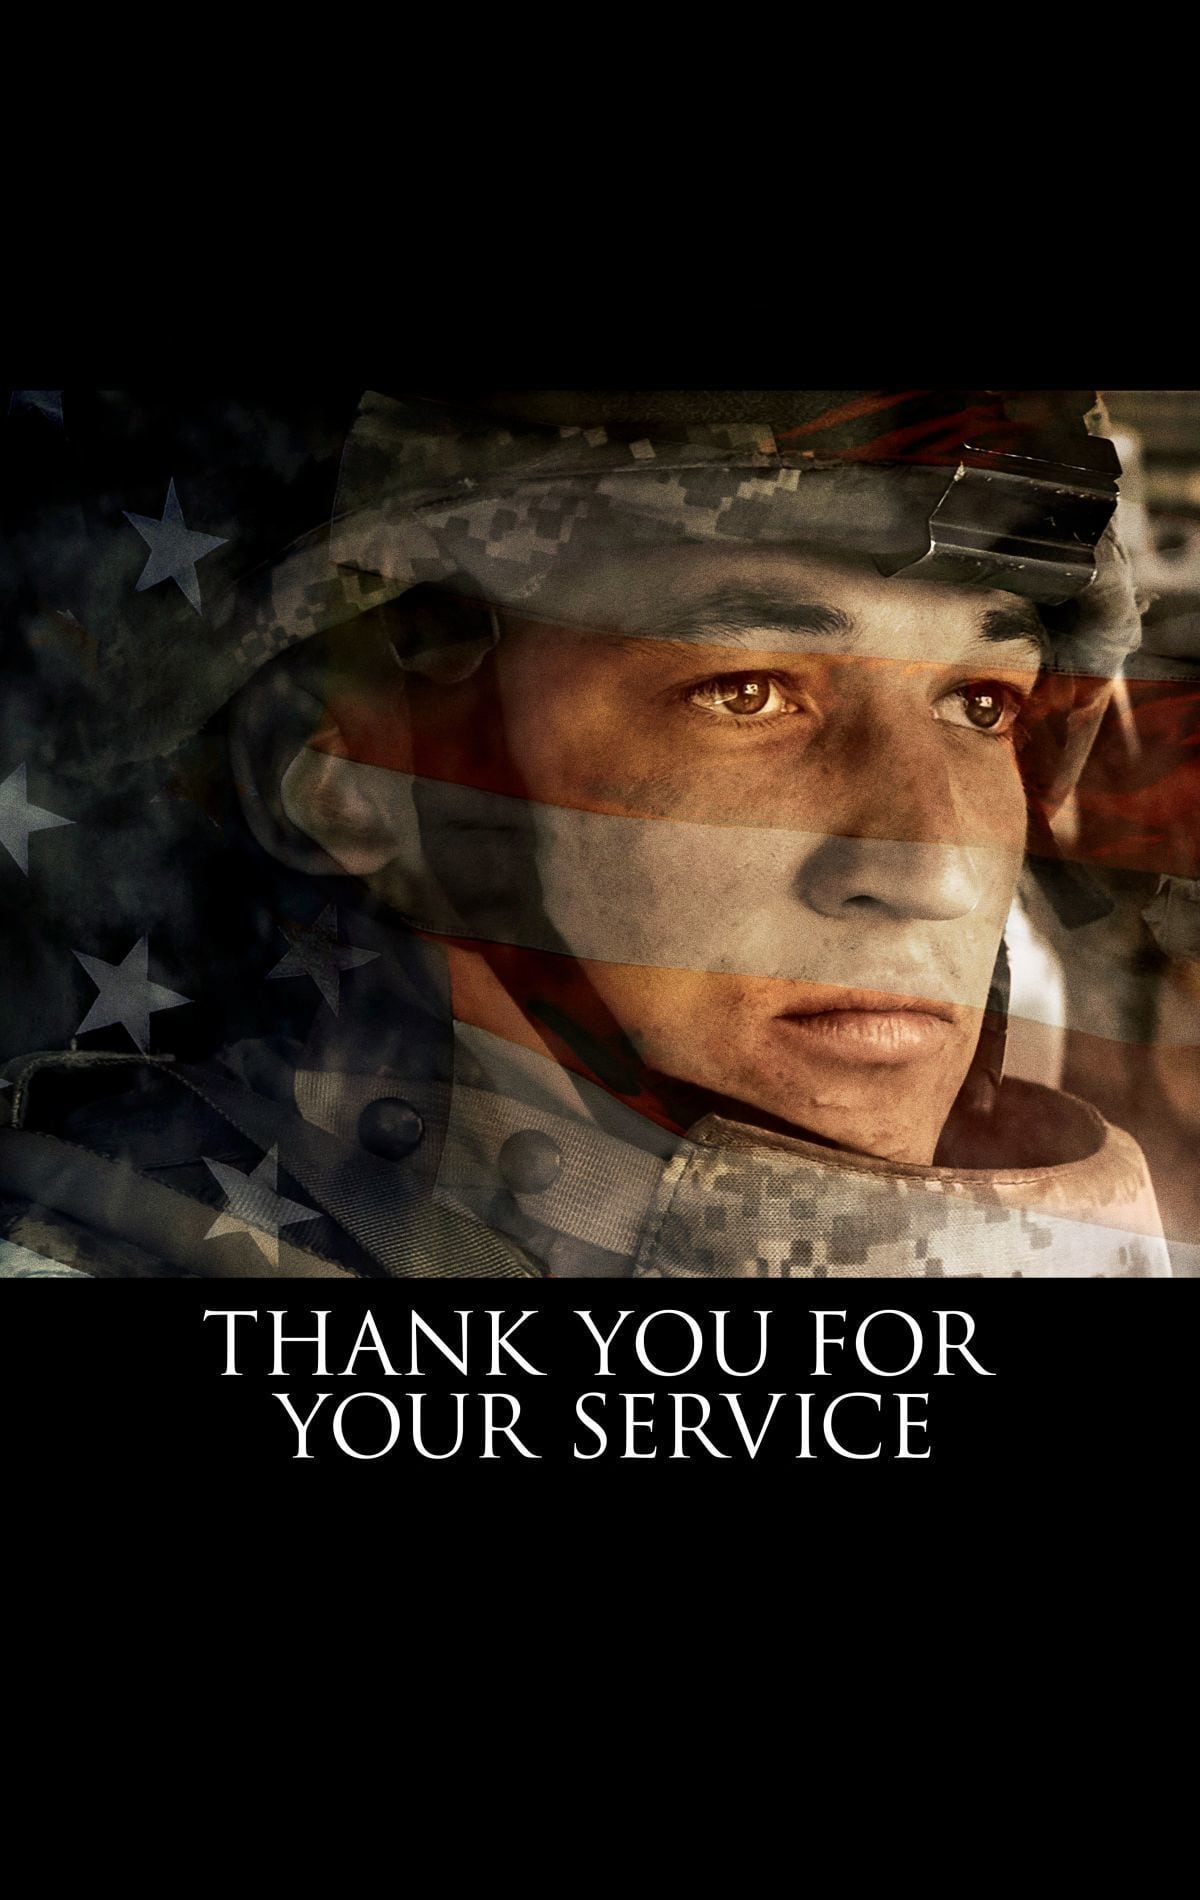 image for Thank You for Your Service